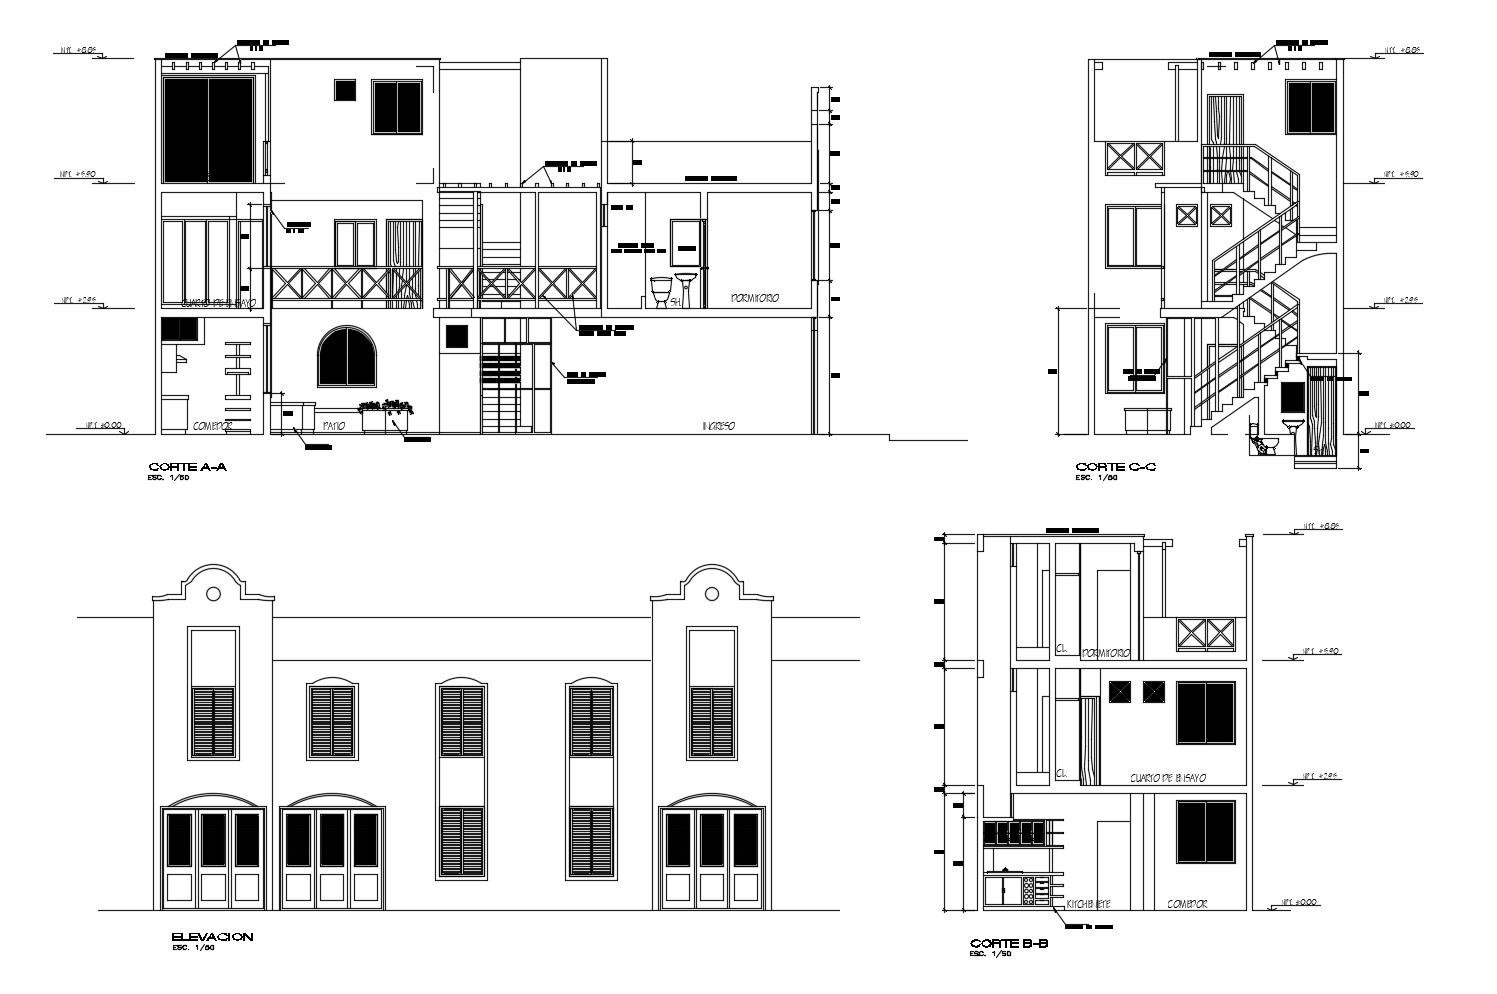 Elevation drawing of 2 storey house with detail dimension